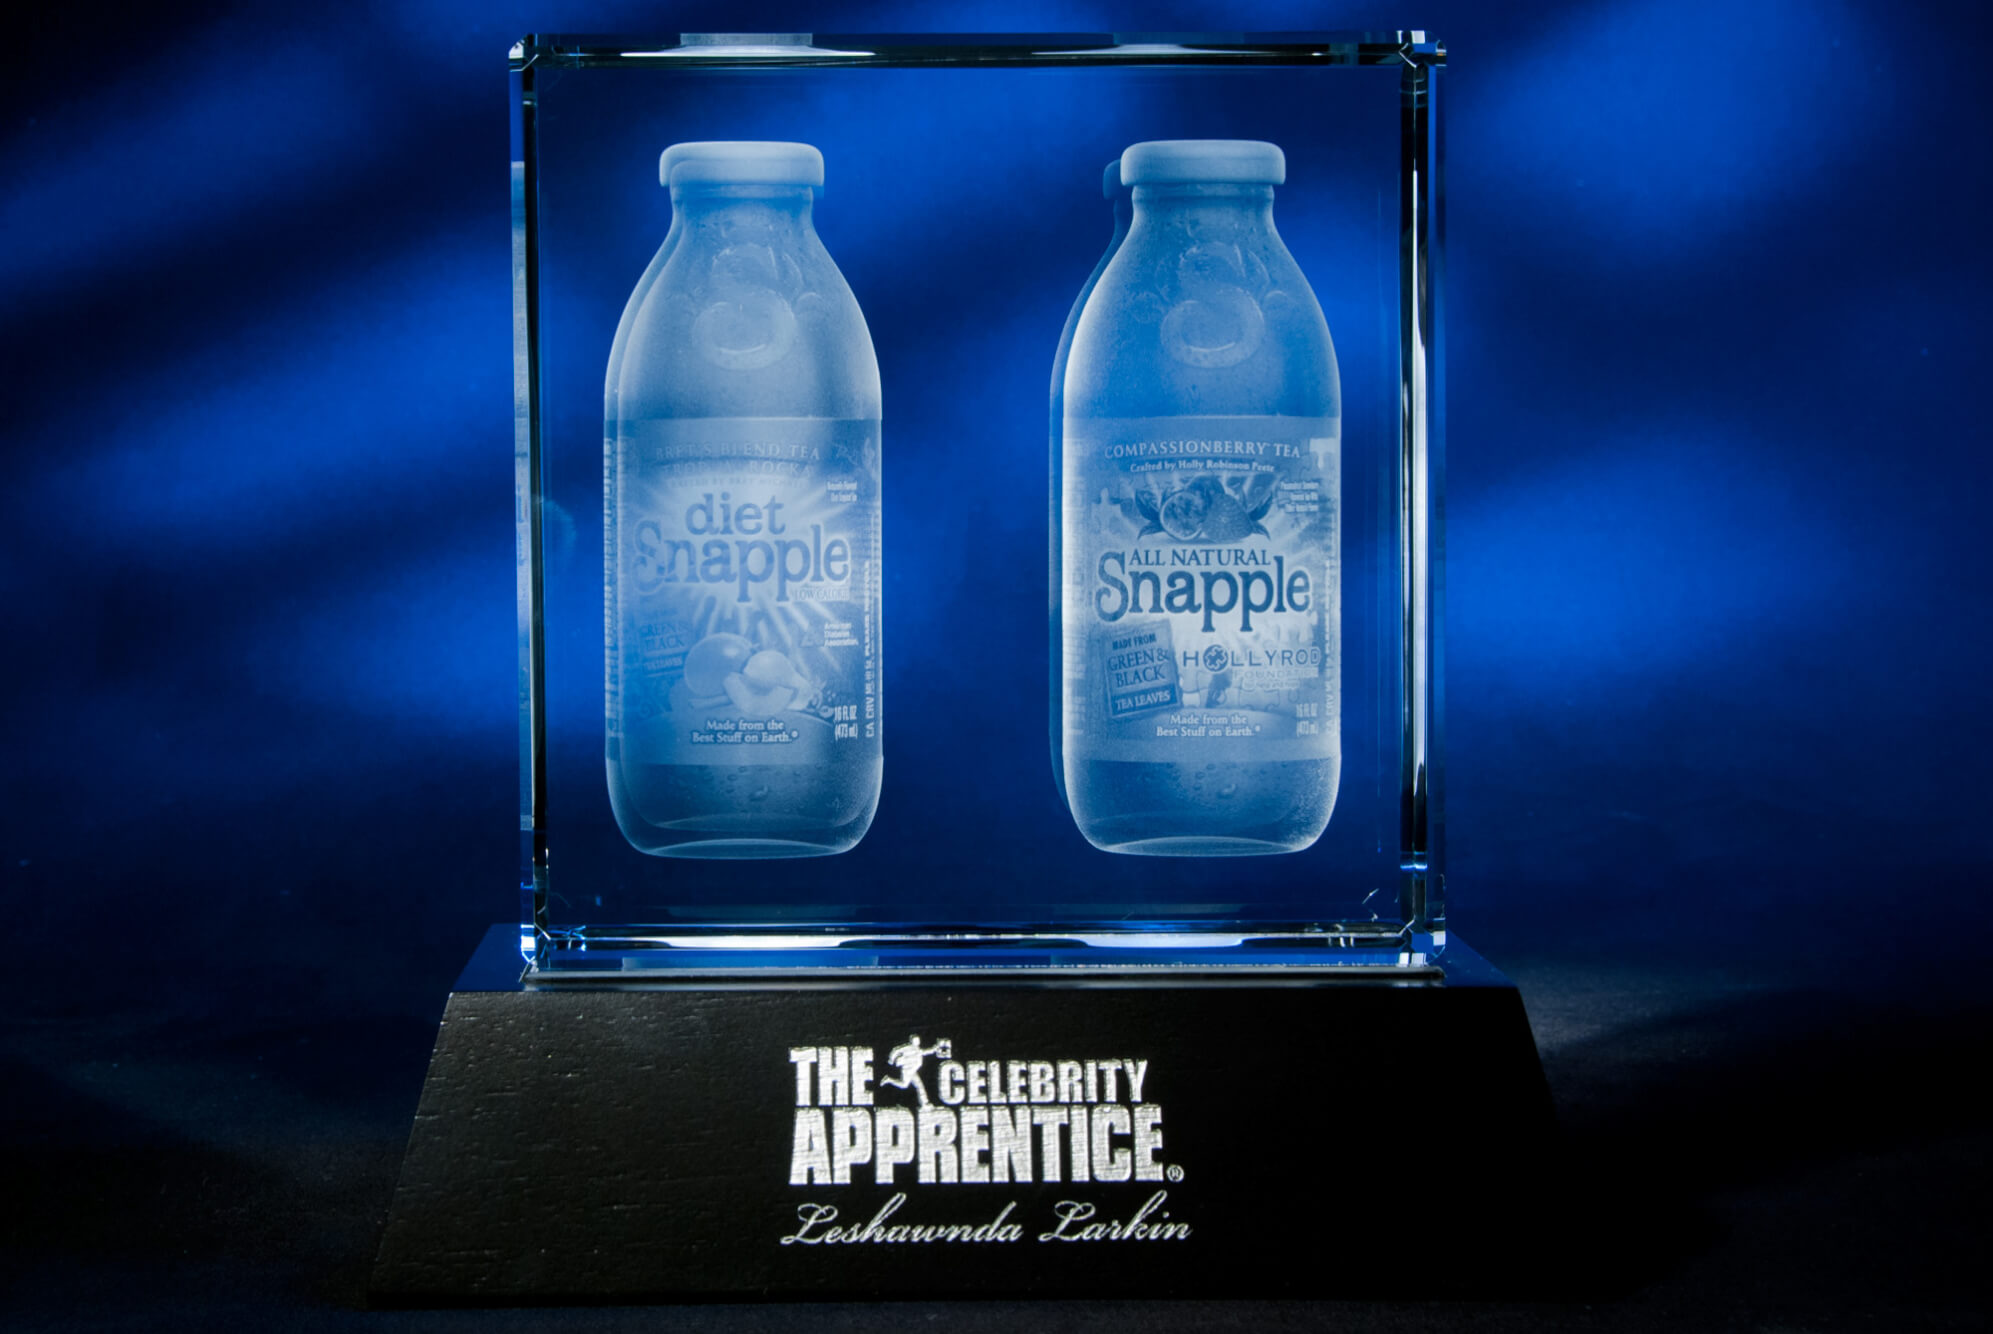 Celebrity Apprentice Snapple Award